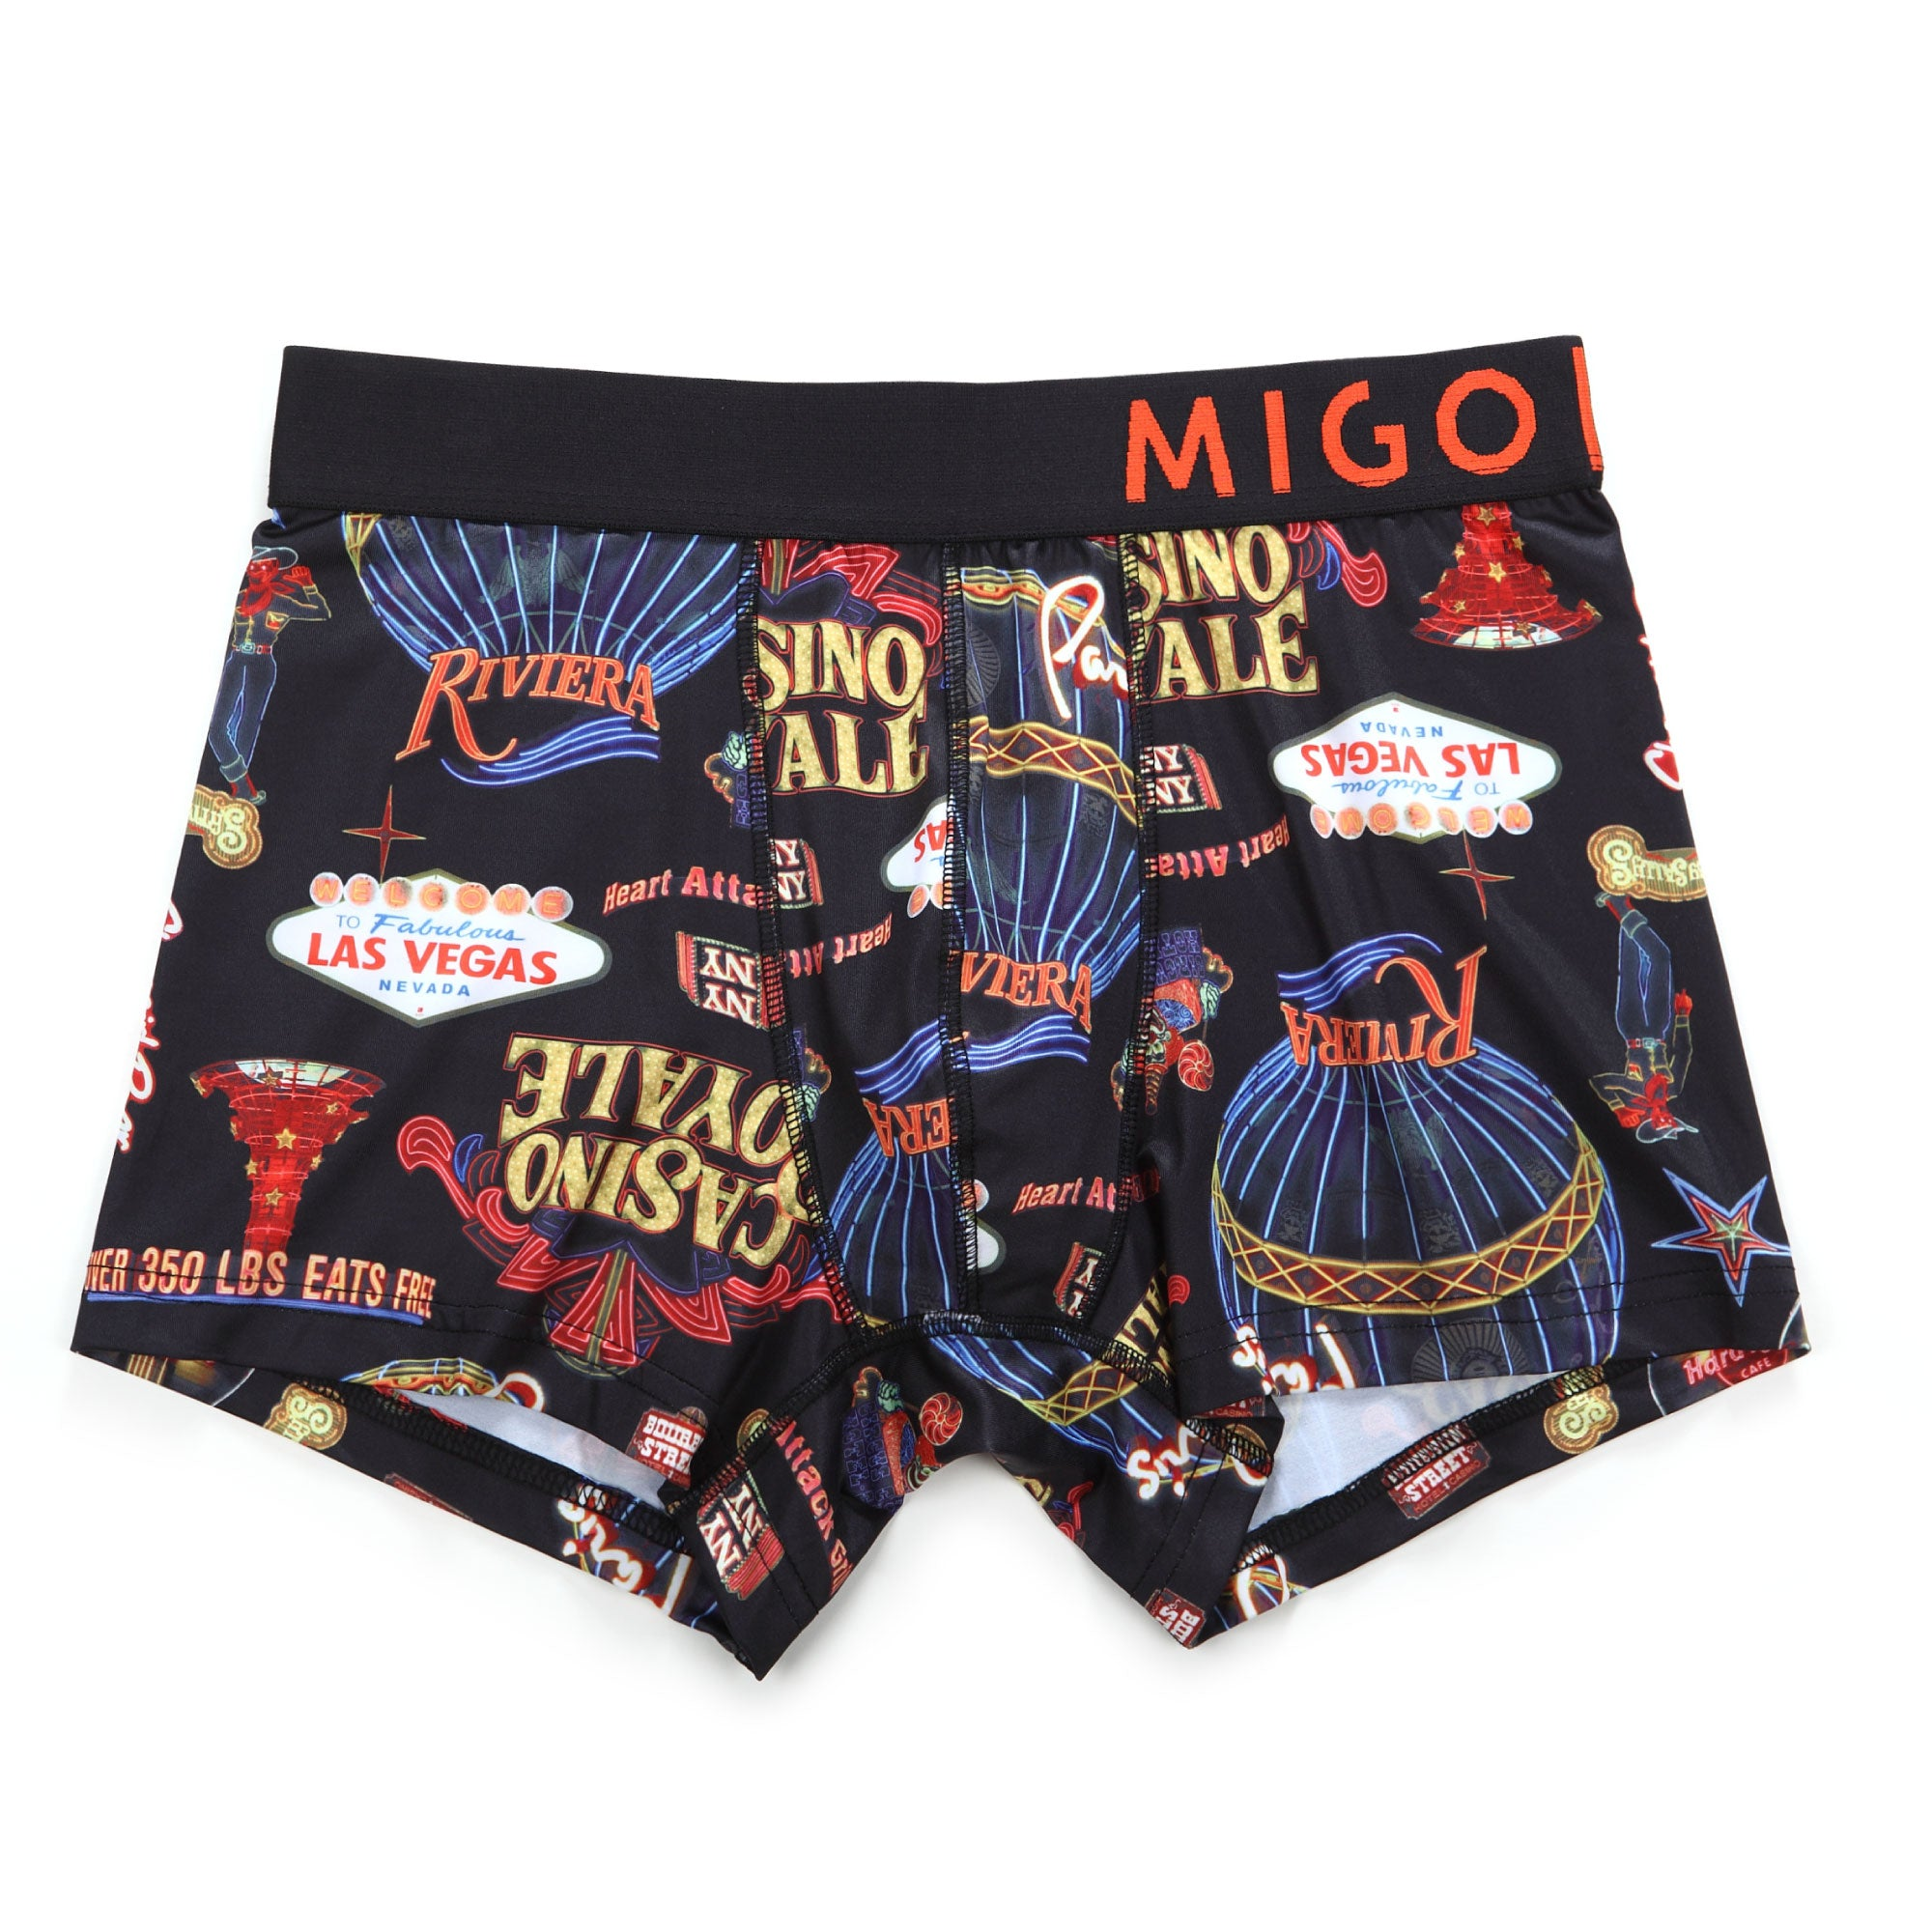 Micro Fibre Pattern Trunk (Lightbox Black) - [MIGO Menswear]